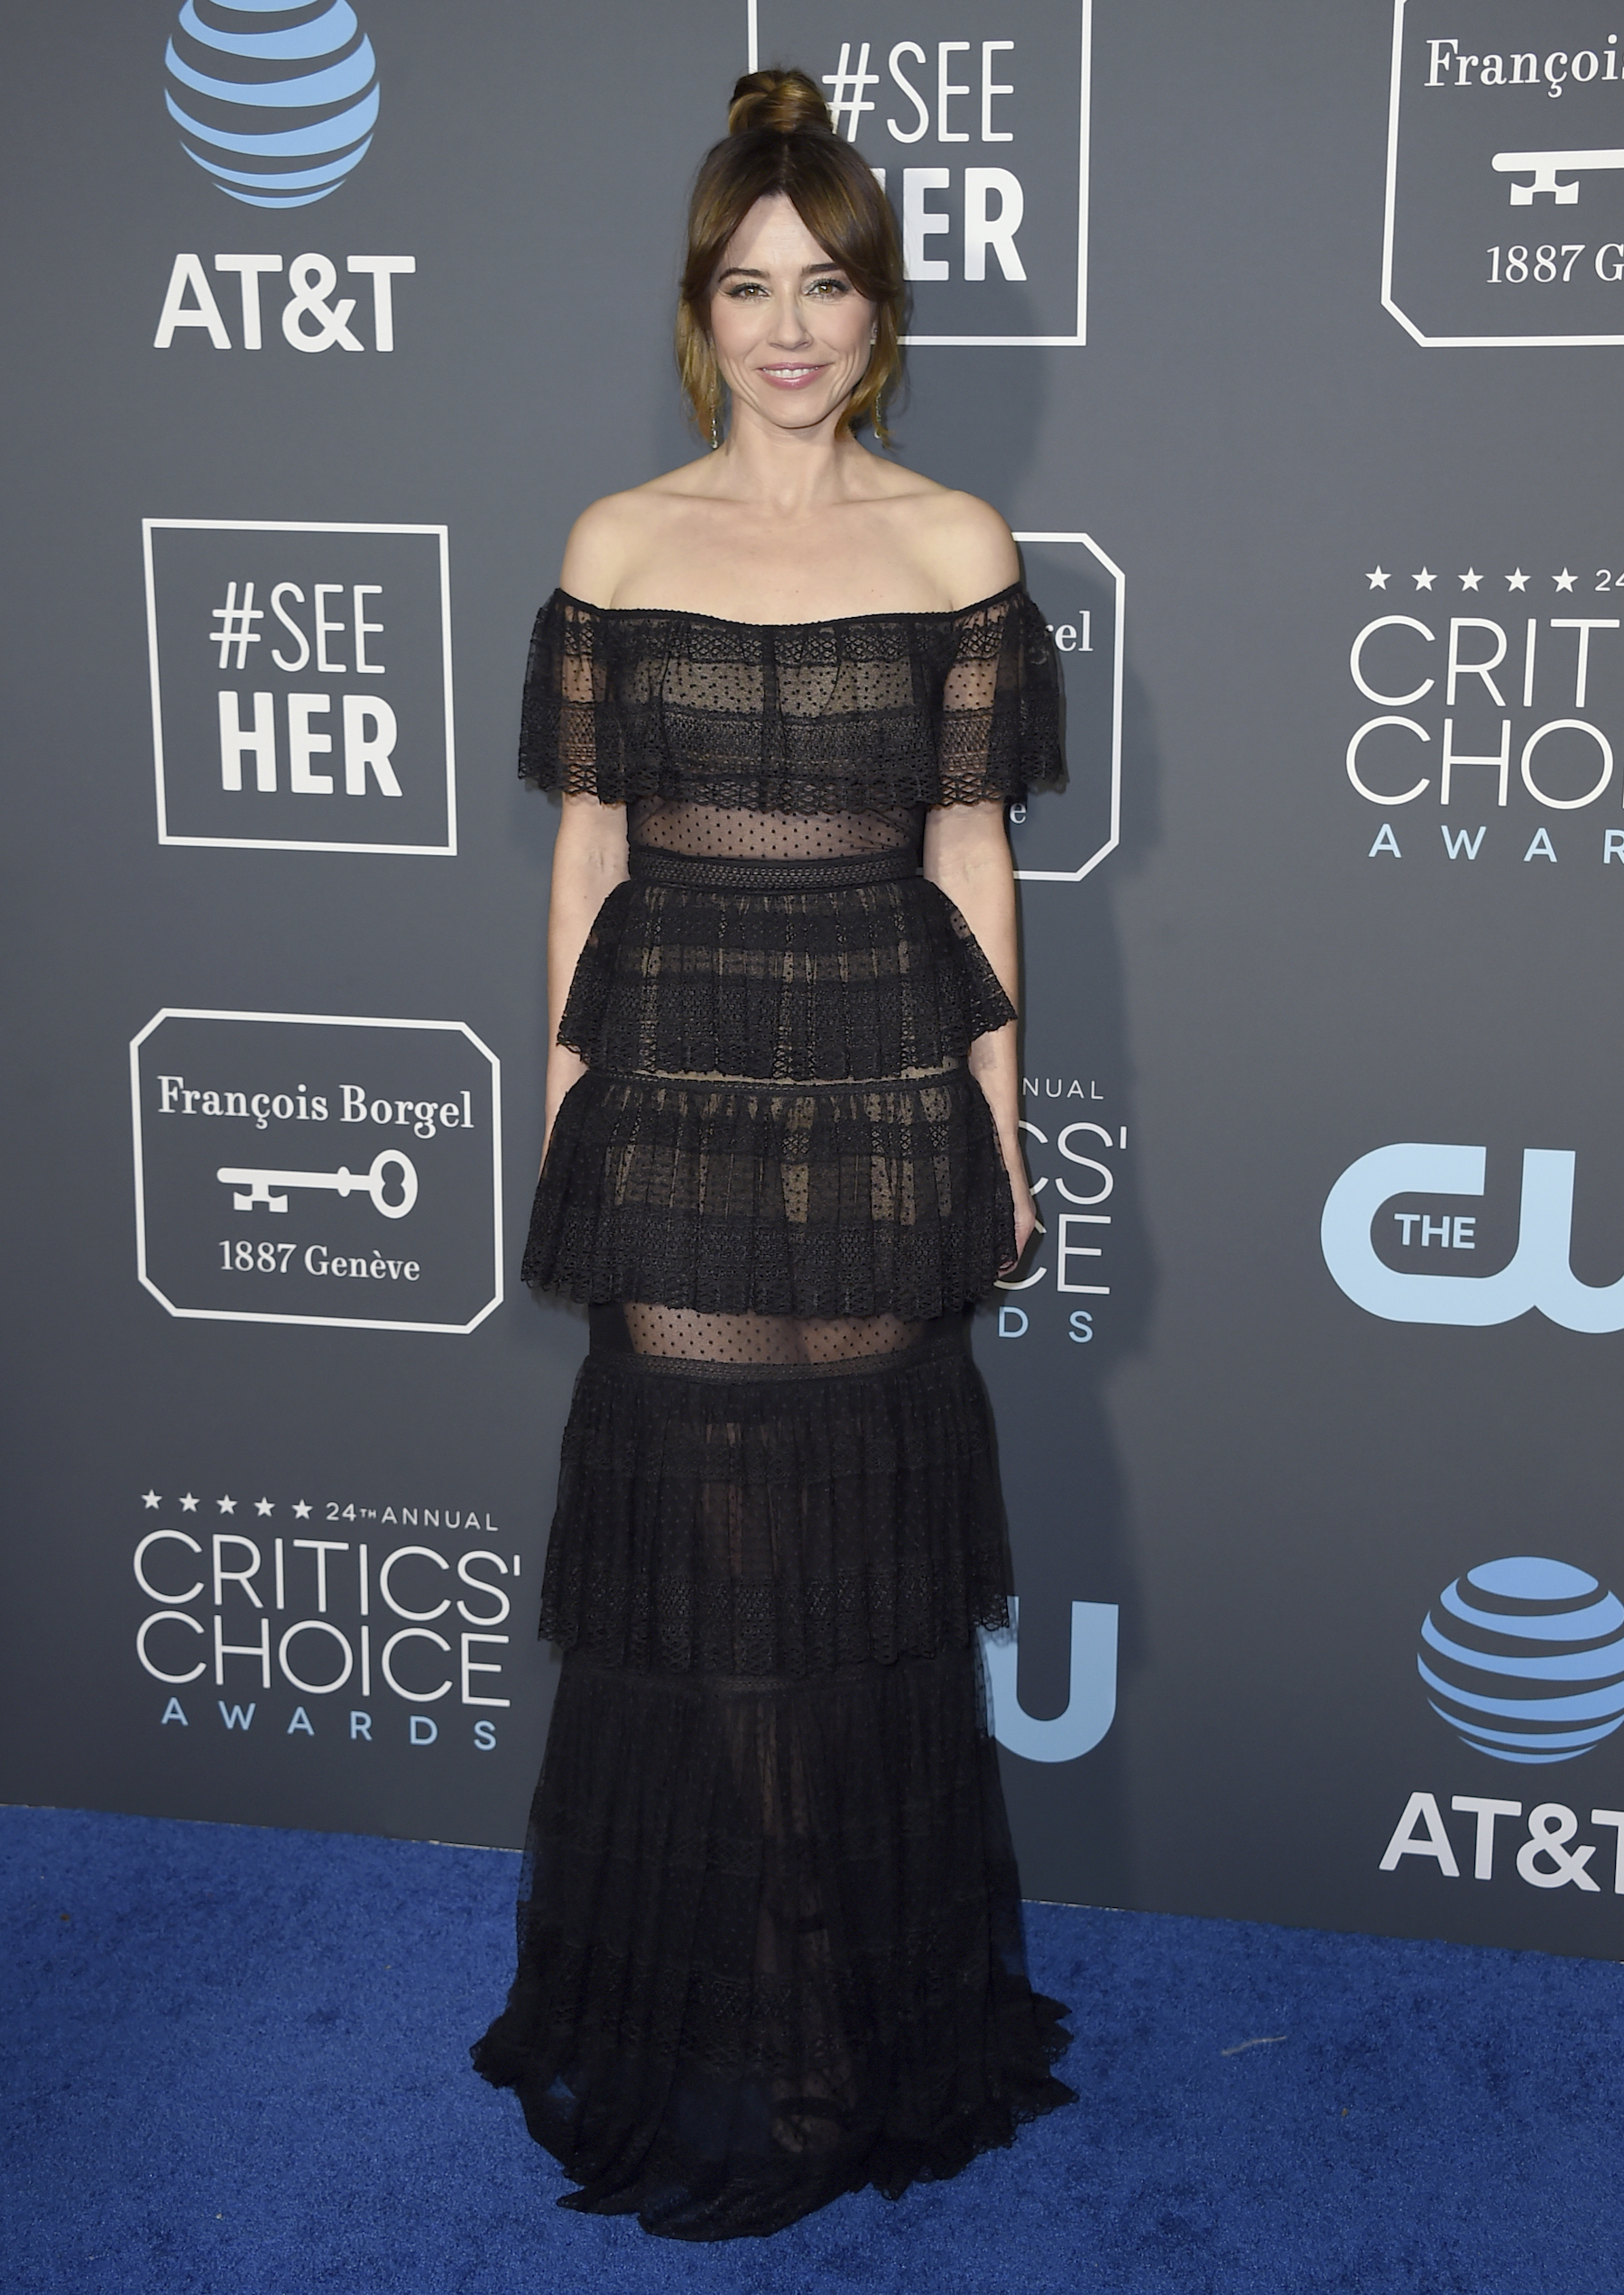 "<div class=""meta image-caption""><div class=""origin-logo origin-image ap""><span>AP</span></div><span class=""caption-text"">Linda Cardellini arrives at the 24th annual Critics' Choice Awards on Sunday, Jan. 13, 2019, at the Barker Hangar in Santa Monica, Calif. (Jordan Strauss/Invision/AP)</span></div>"